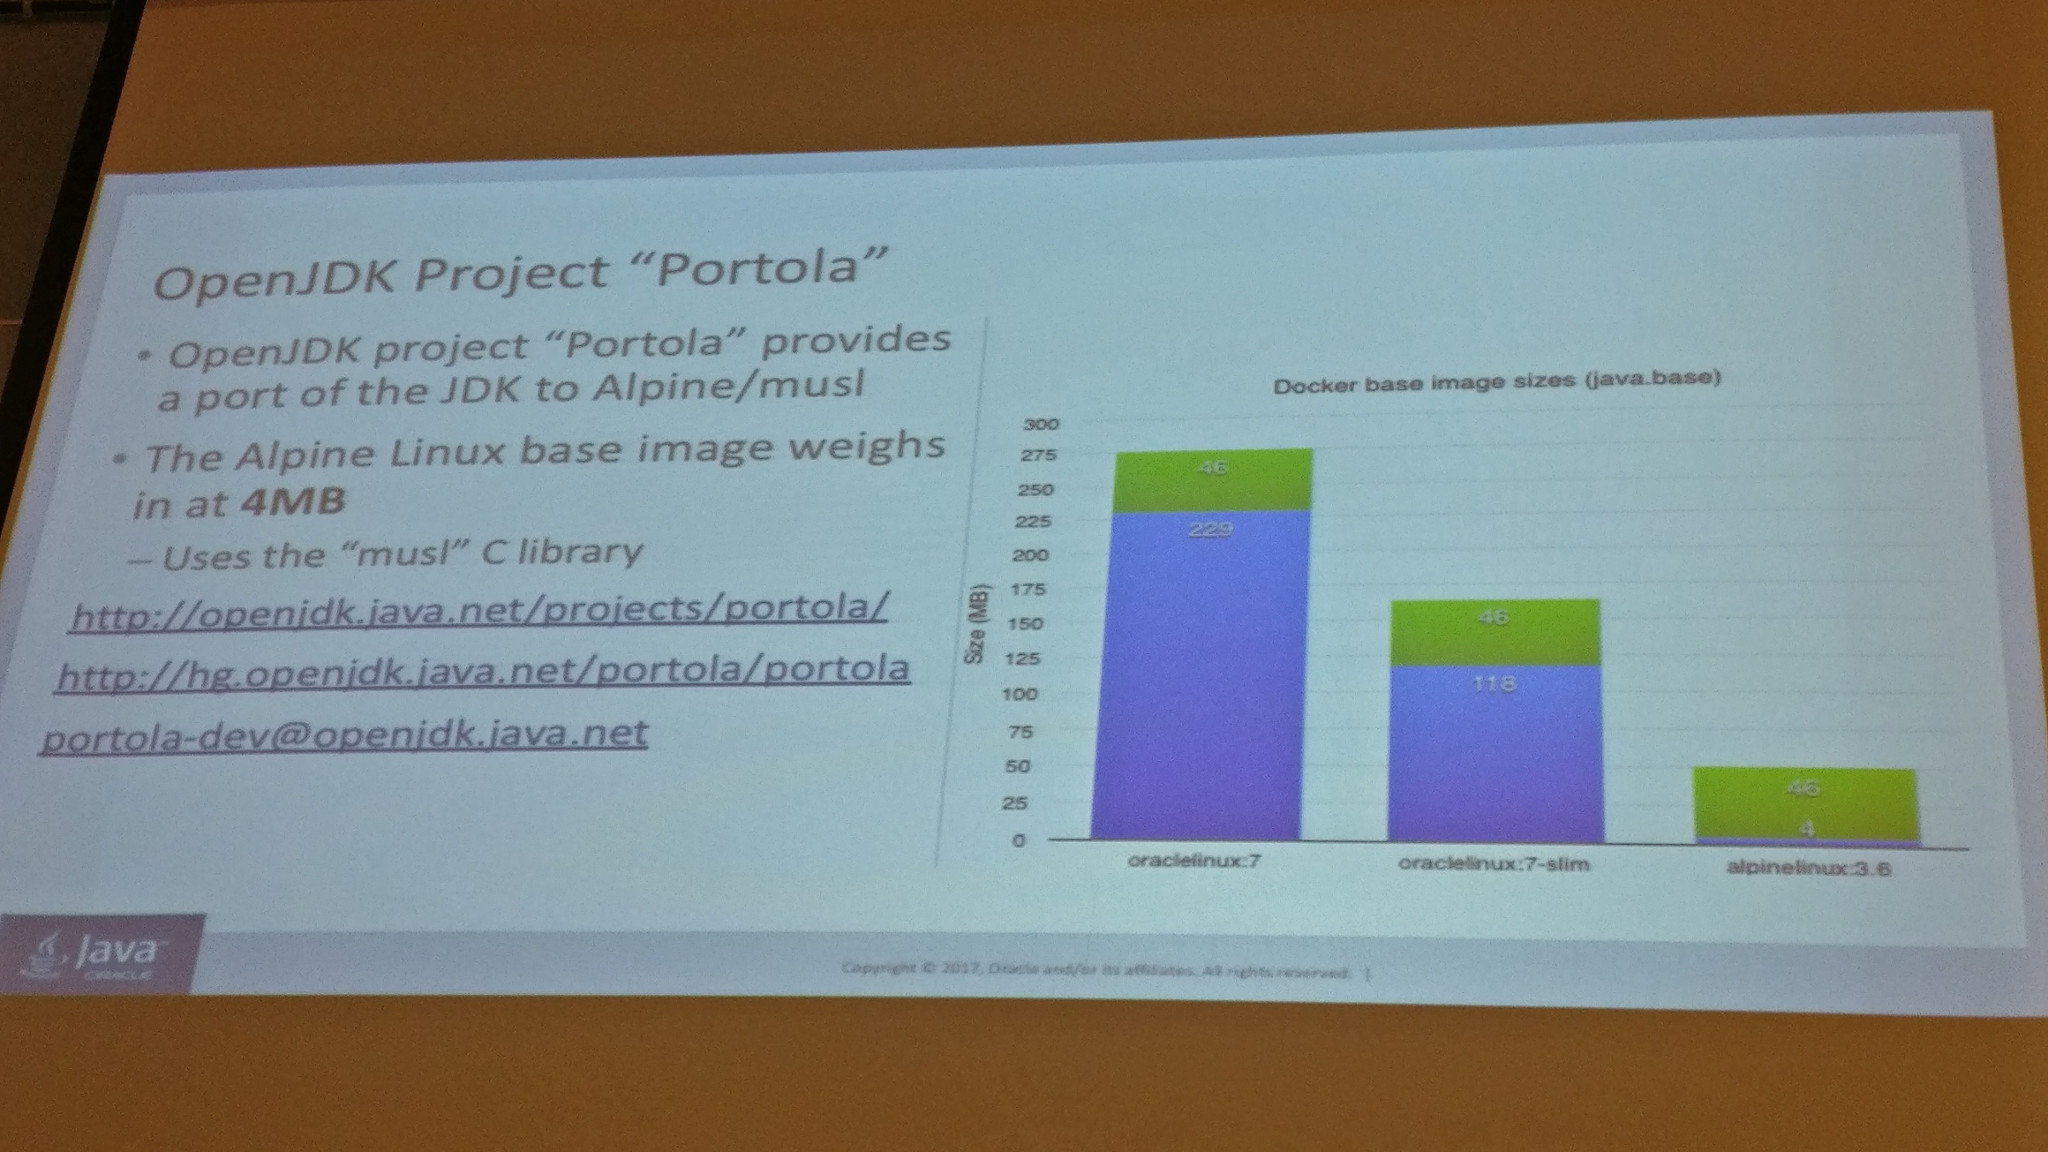 OpenJDK Portola Project